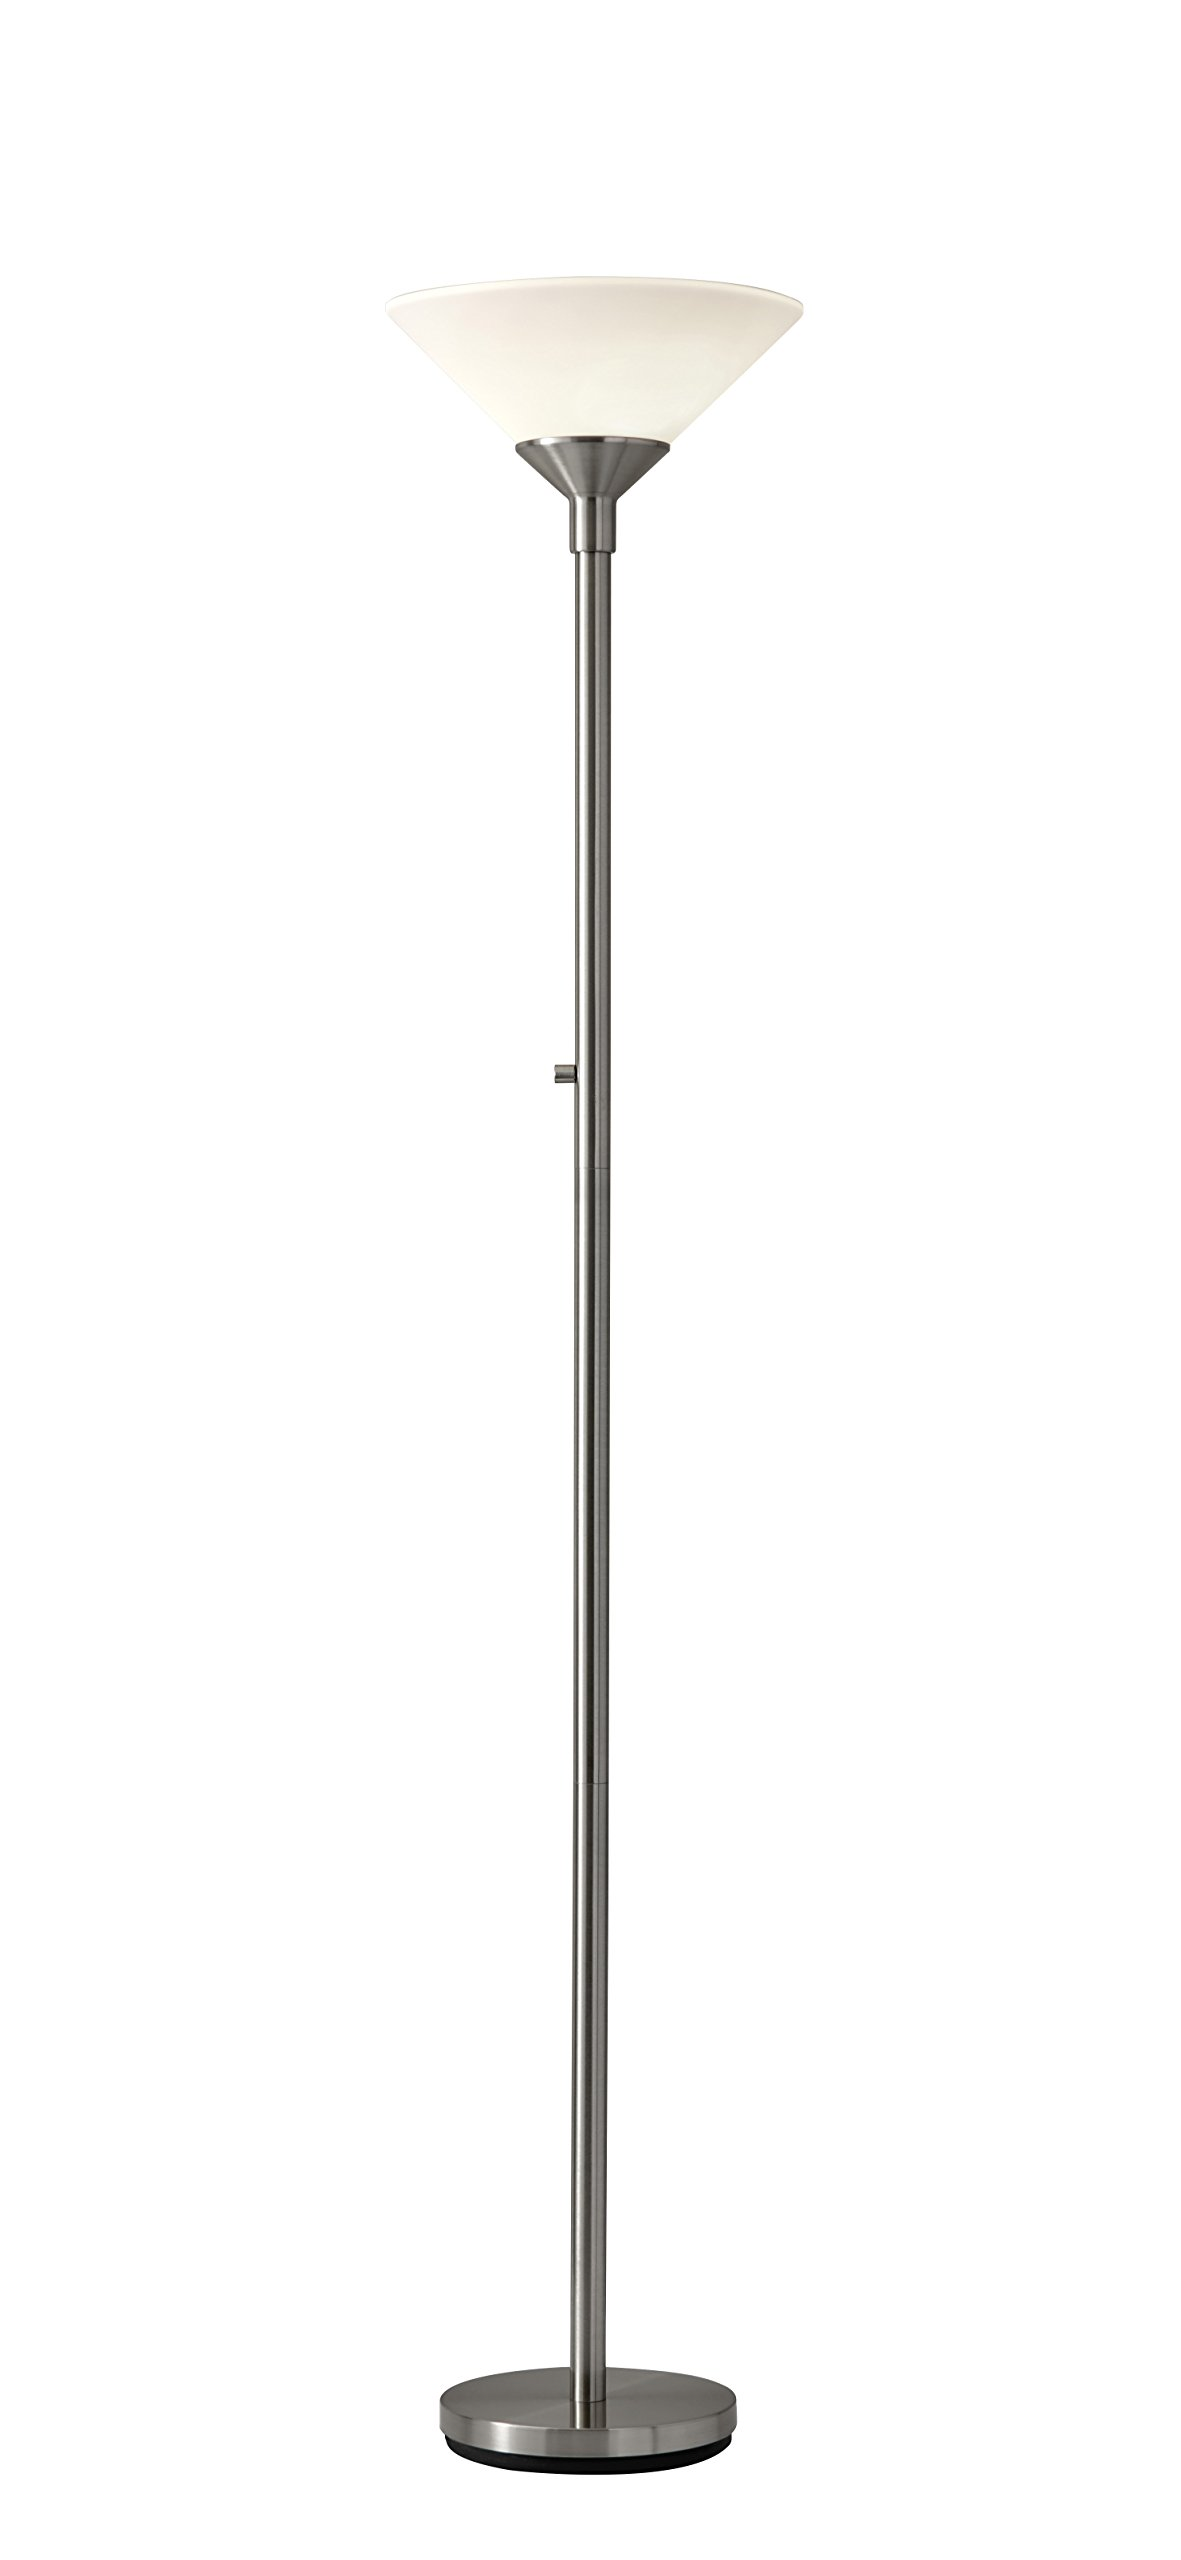 Adesso 7500-22 Aries 73'' Torchiere-Style Incandescent Floor Lamp, Satin Steel, Smart Outlet Compatible